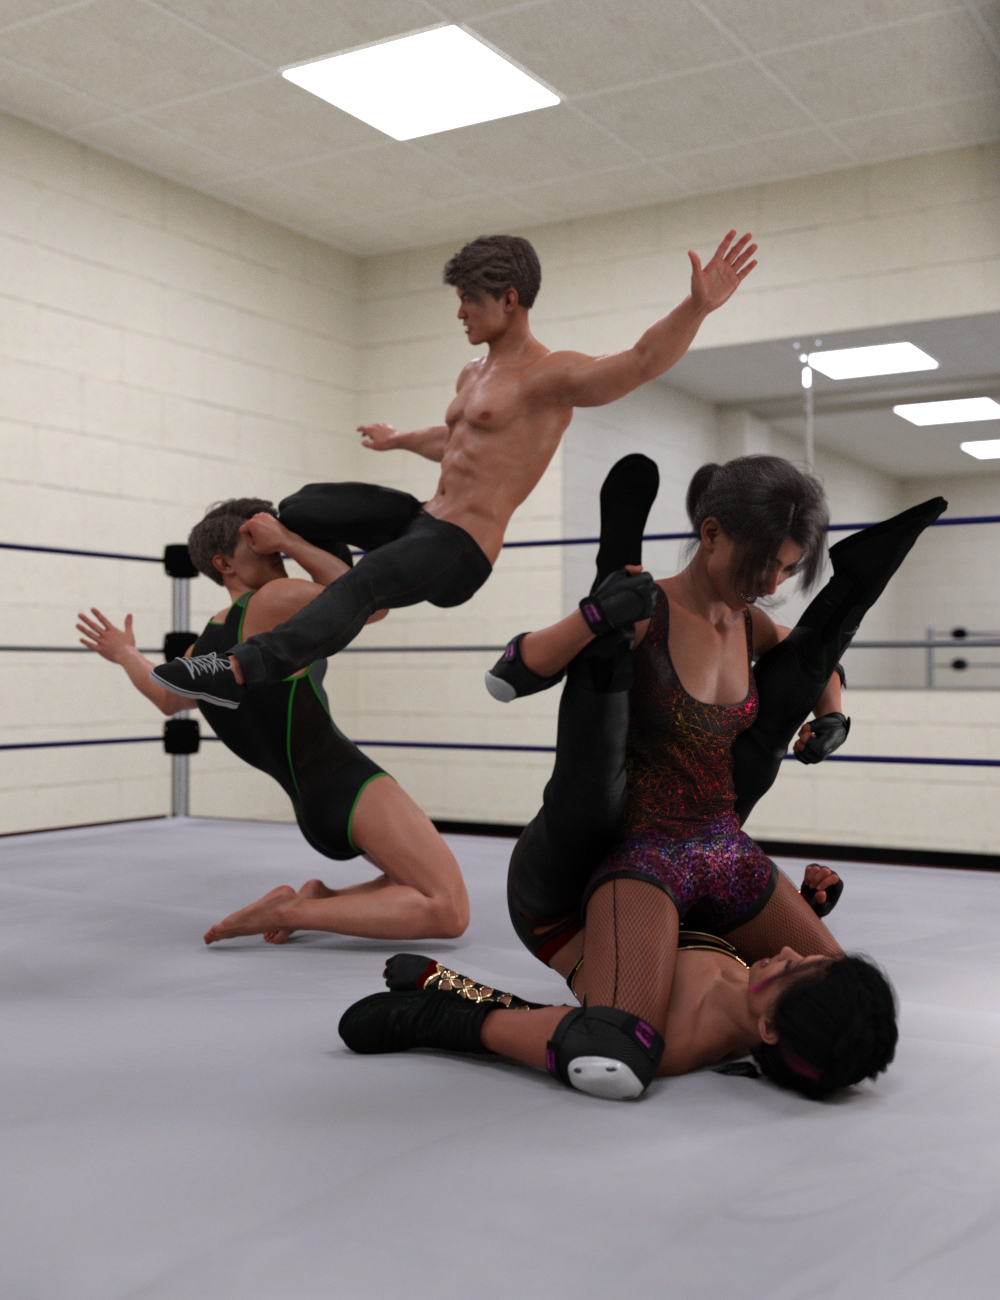 The Spectacle of Wrestling Poses for Genesis 8 by: Scuffles3d, 3D Models by Daz 3D